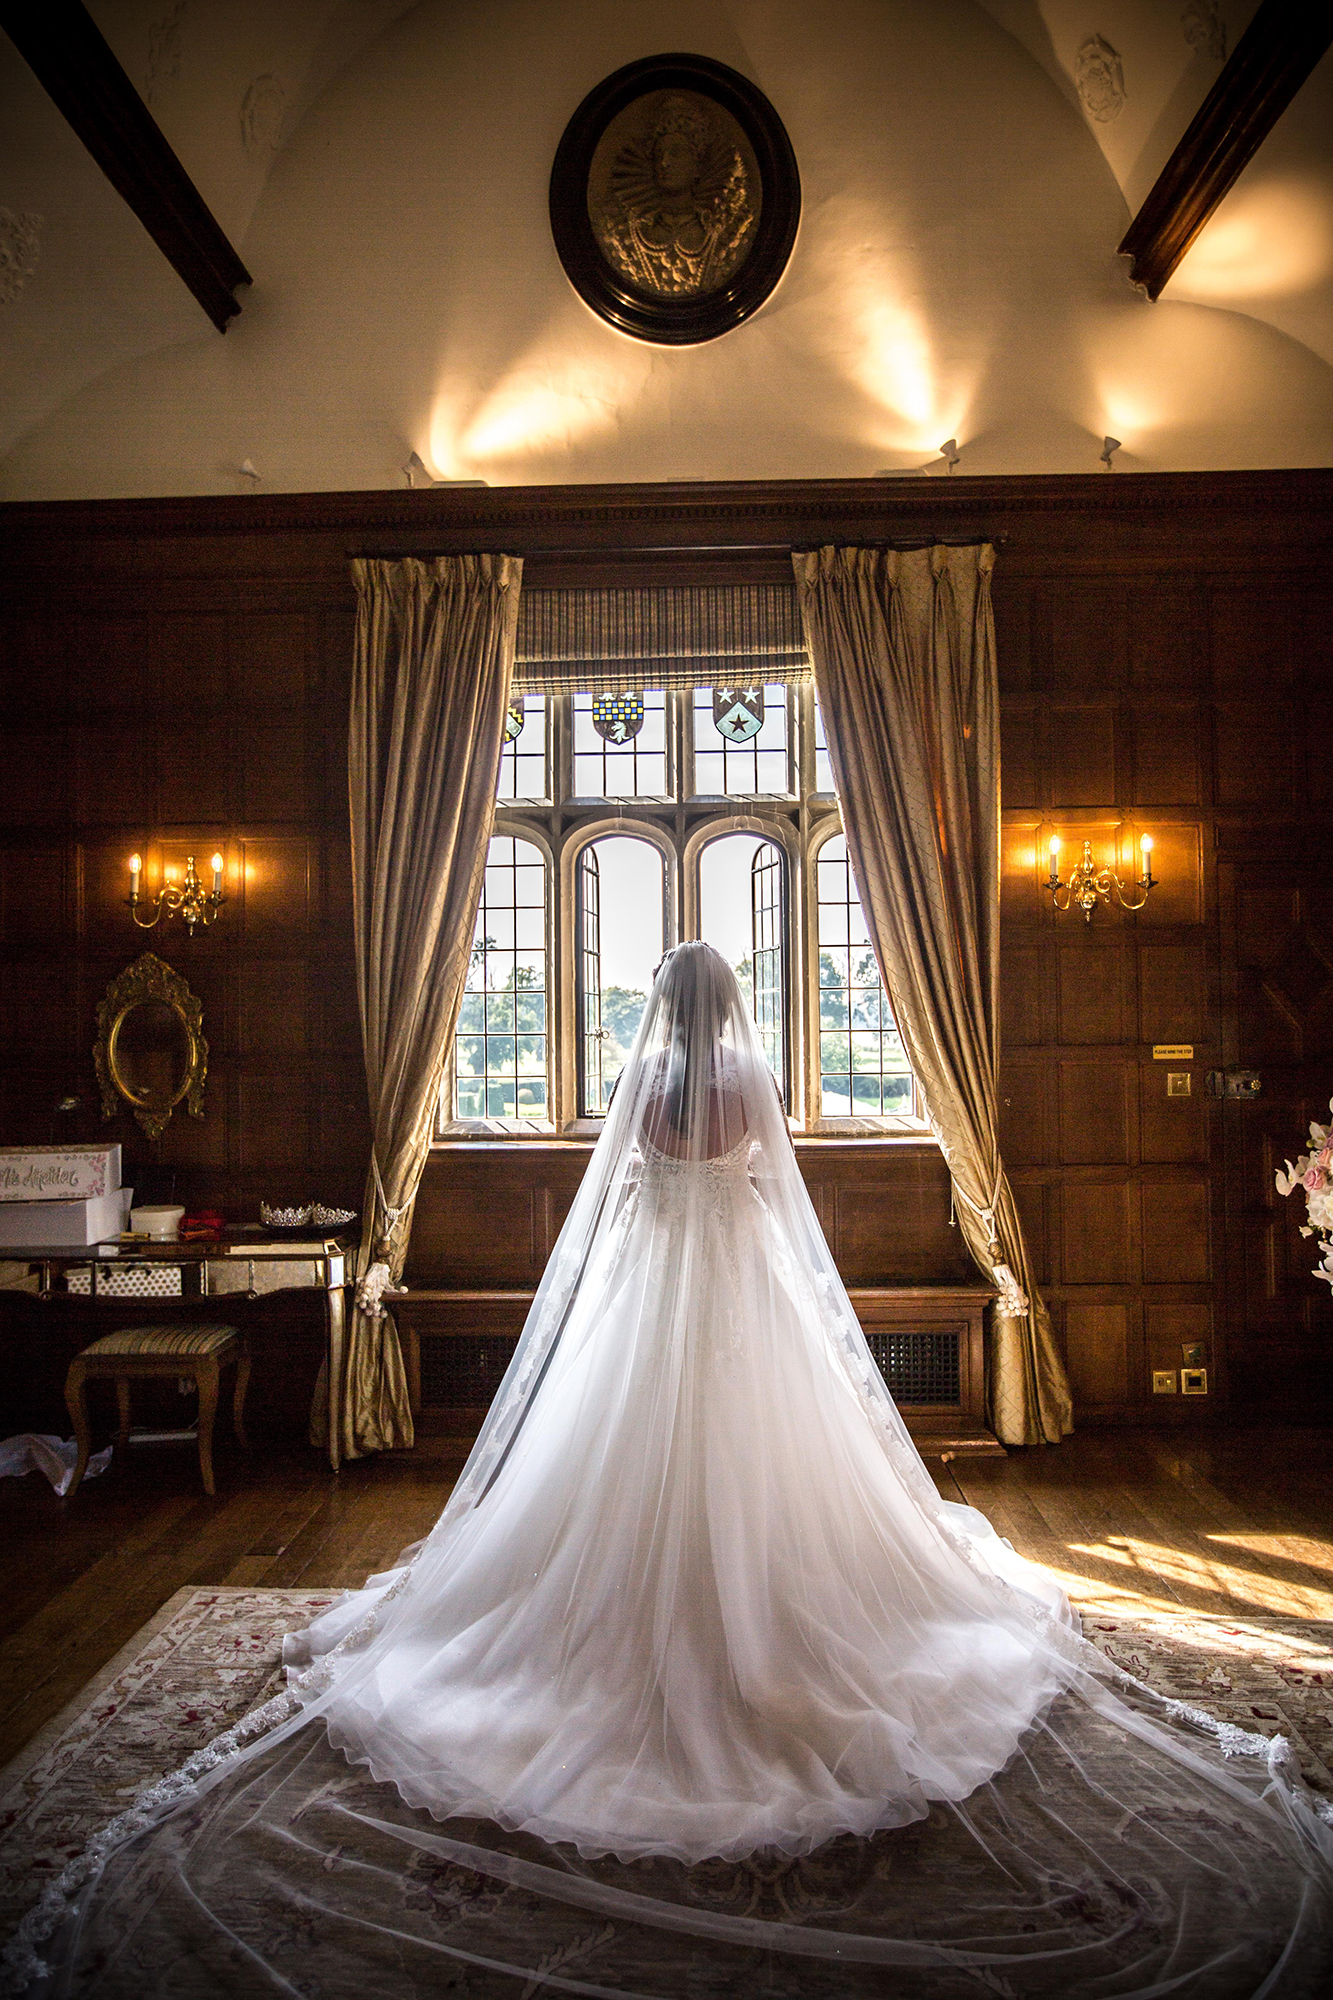 Bride in Wedding Dress looking over the grounds at Hengrave Hall